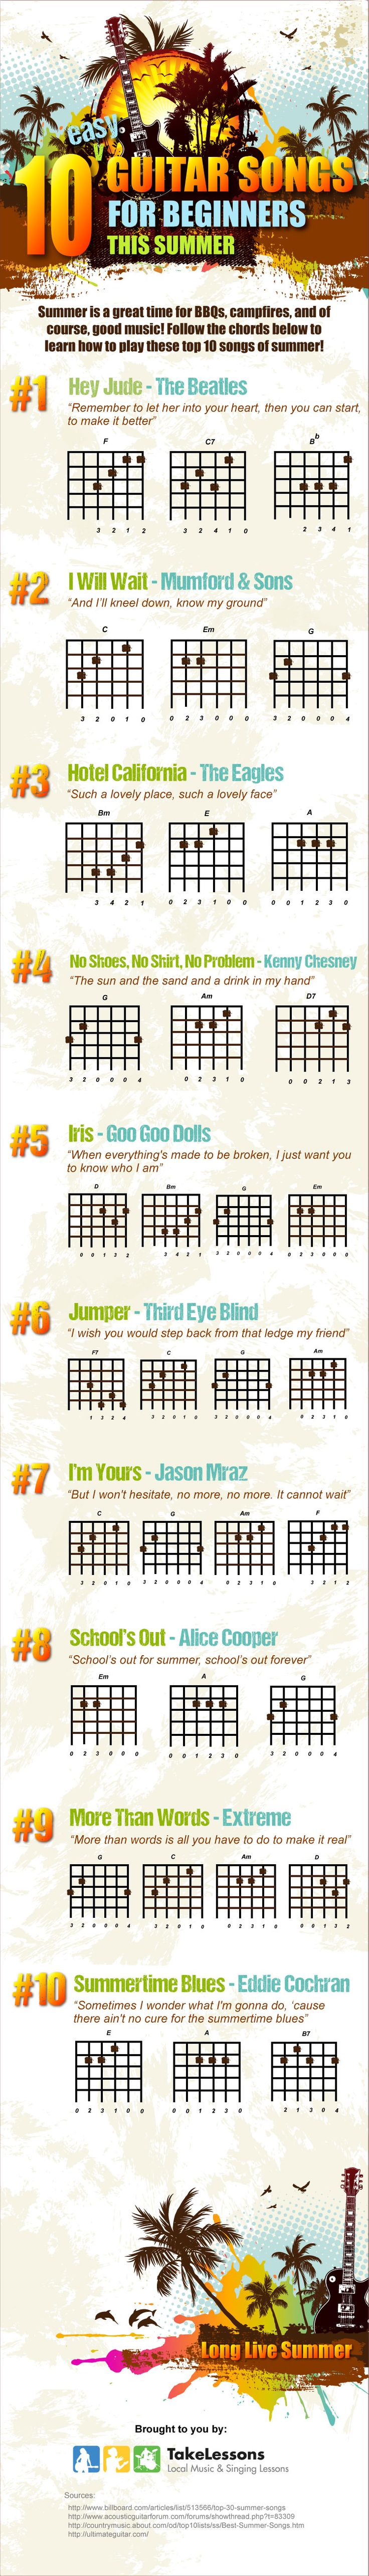 10 Easy Guitar Songs for Beginners